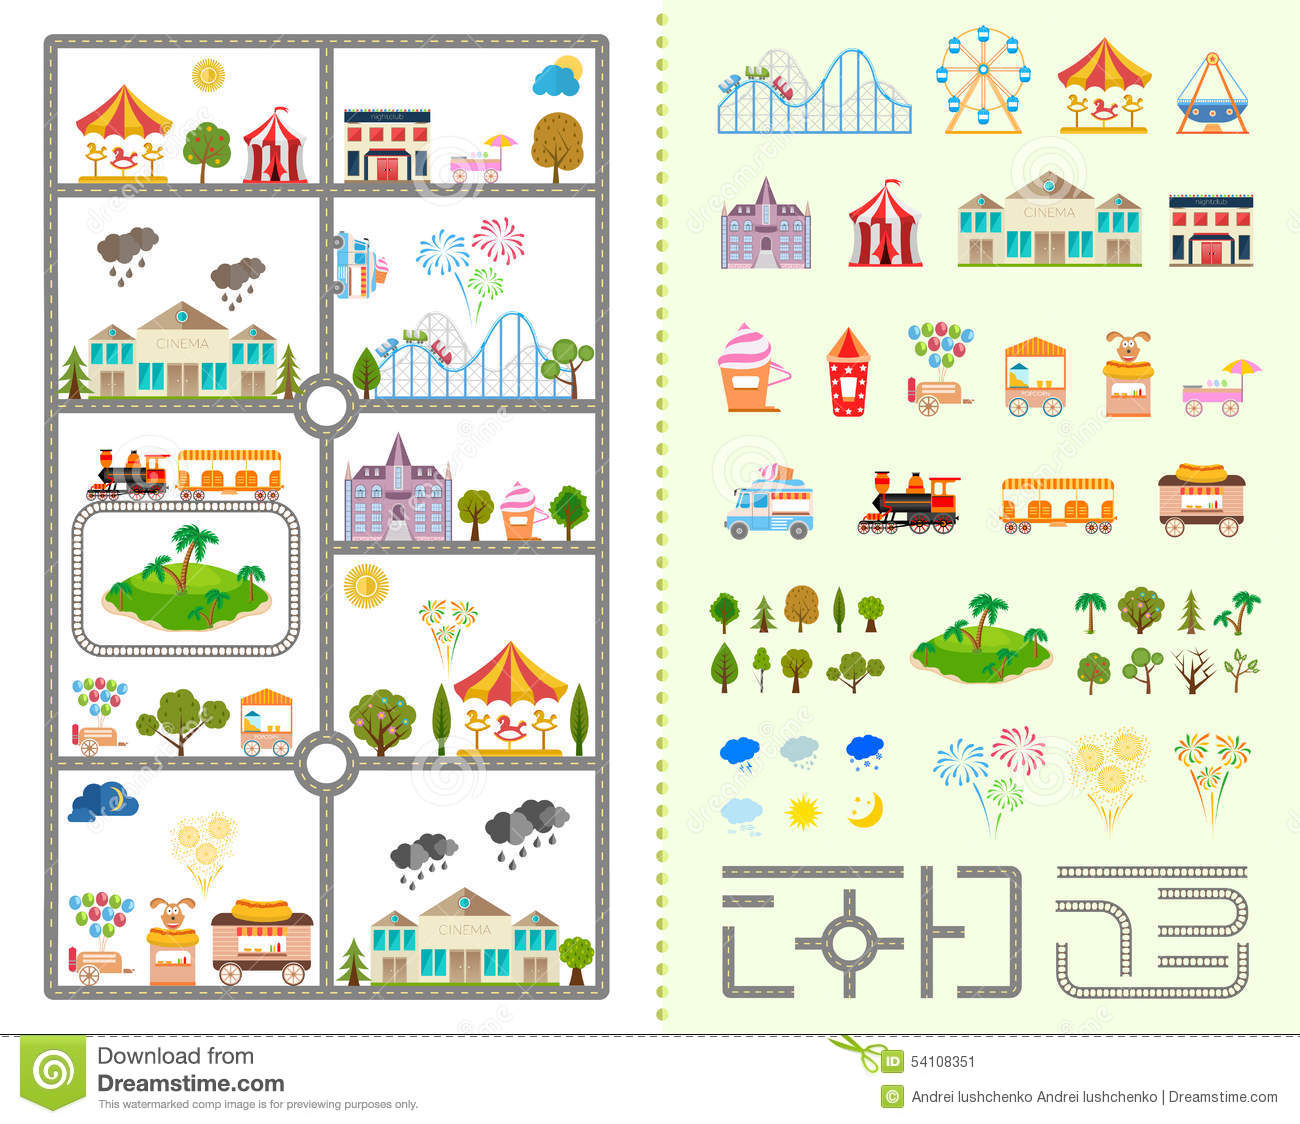 Simple Site Map: Set Of Elements For Creating Your Own City Stock Illustration